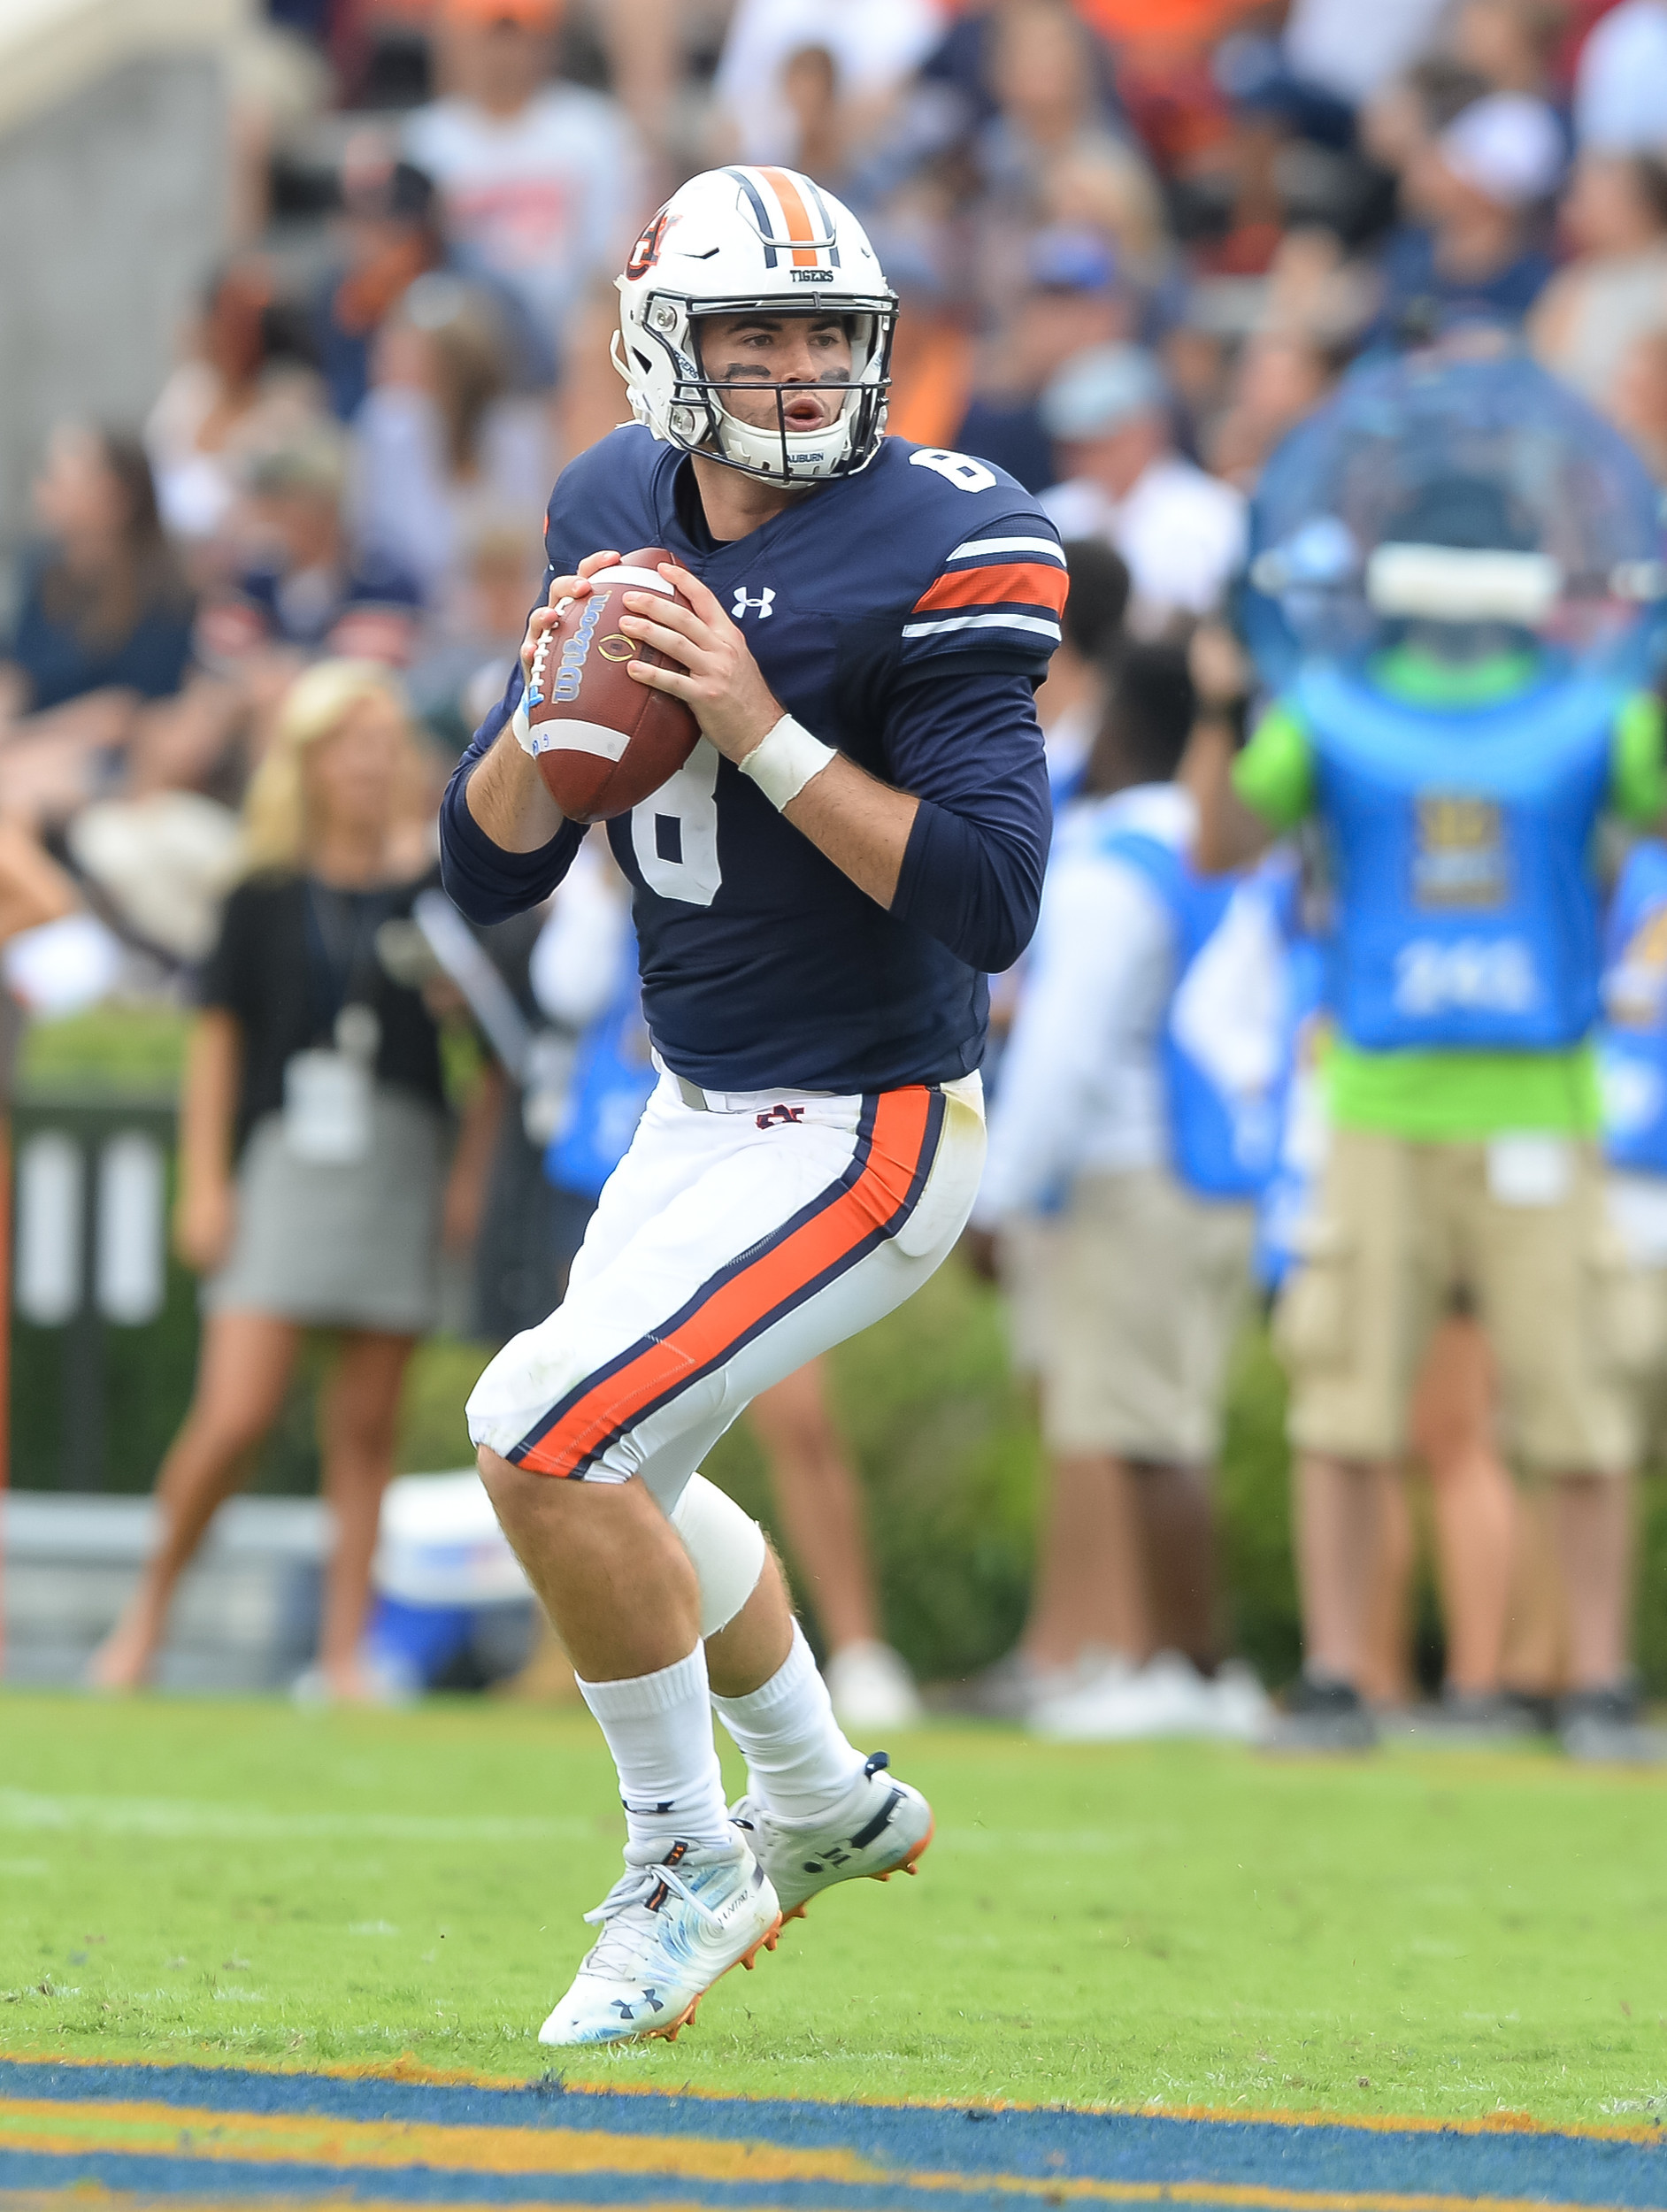 Auburn Tigers quarterback Jarrett Stidham (8) looks to throw during the first half of Saturday's game, at Jordan Hare Stadium in Auburn AL. Daily Mountain Eagle -  Jeff Johnsey